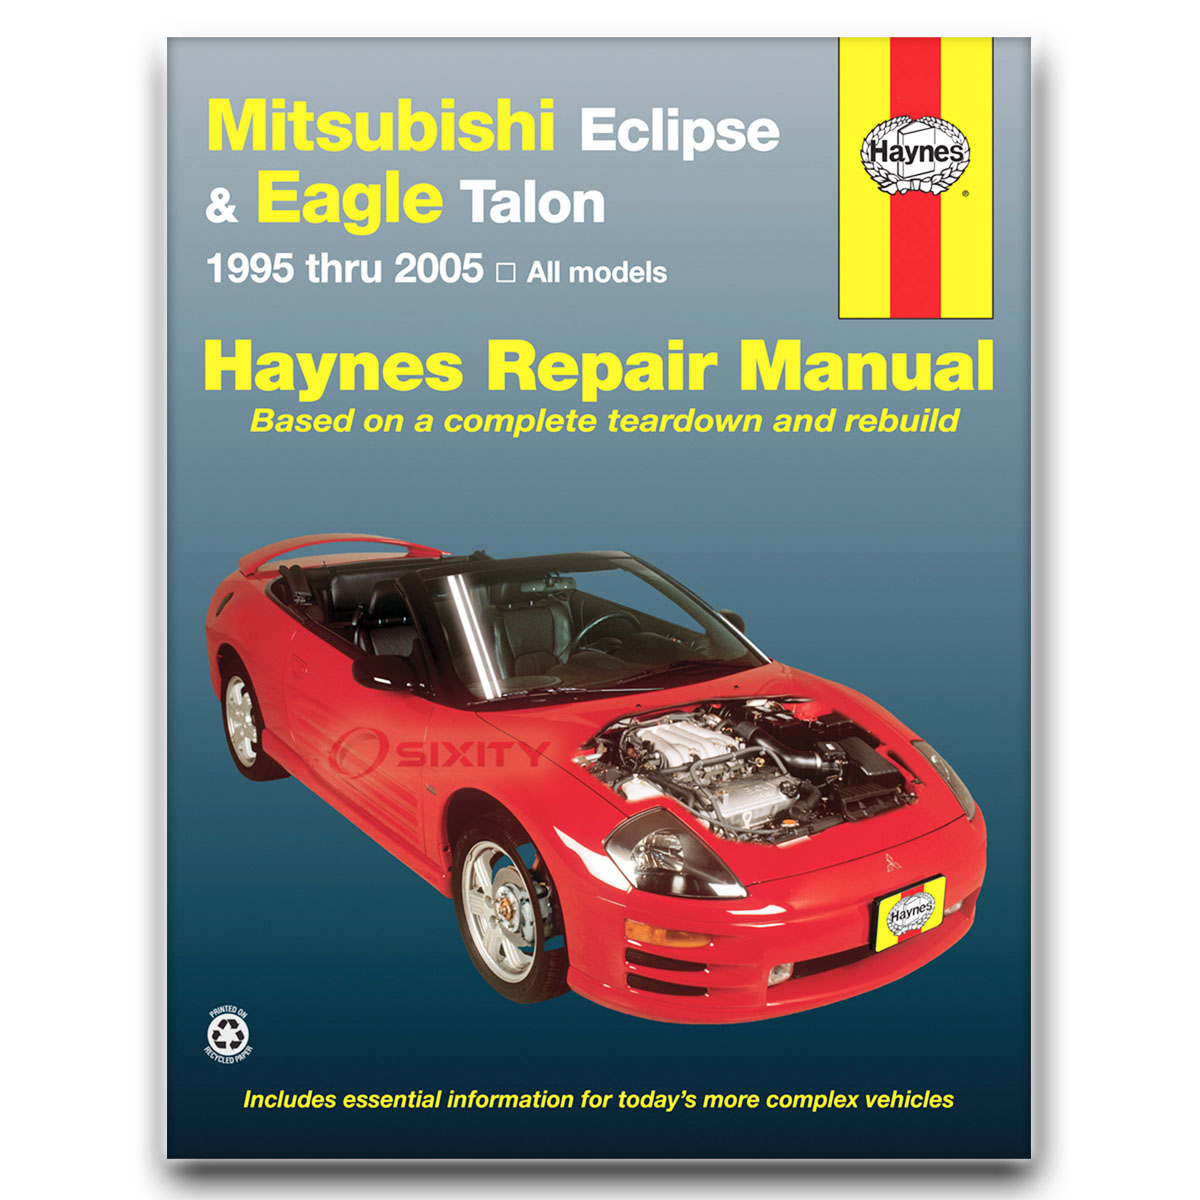 2000 eclipse gt repair manual how to and user guide instructions u2022 rh taxibermuda co mitsubishi eclipse service manual pdf mitsubishi eclipse repair manual pdf